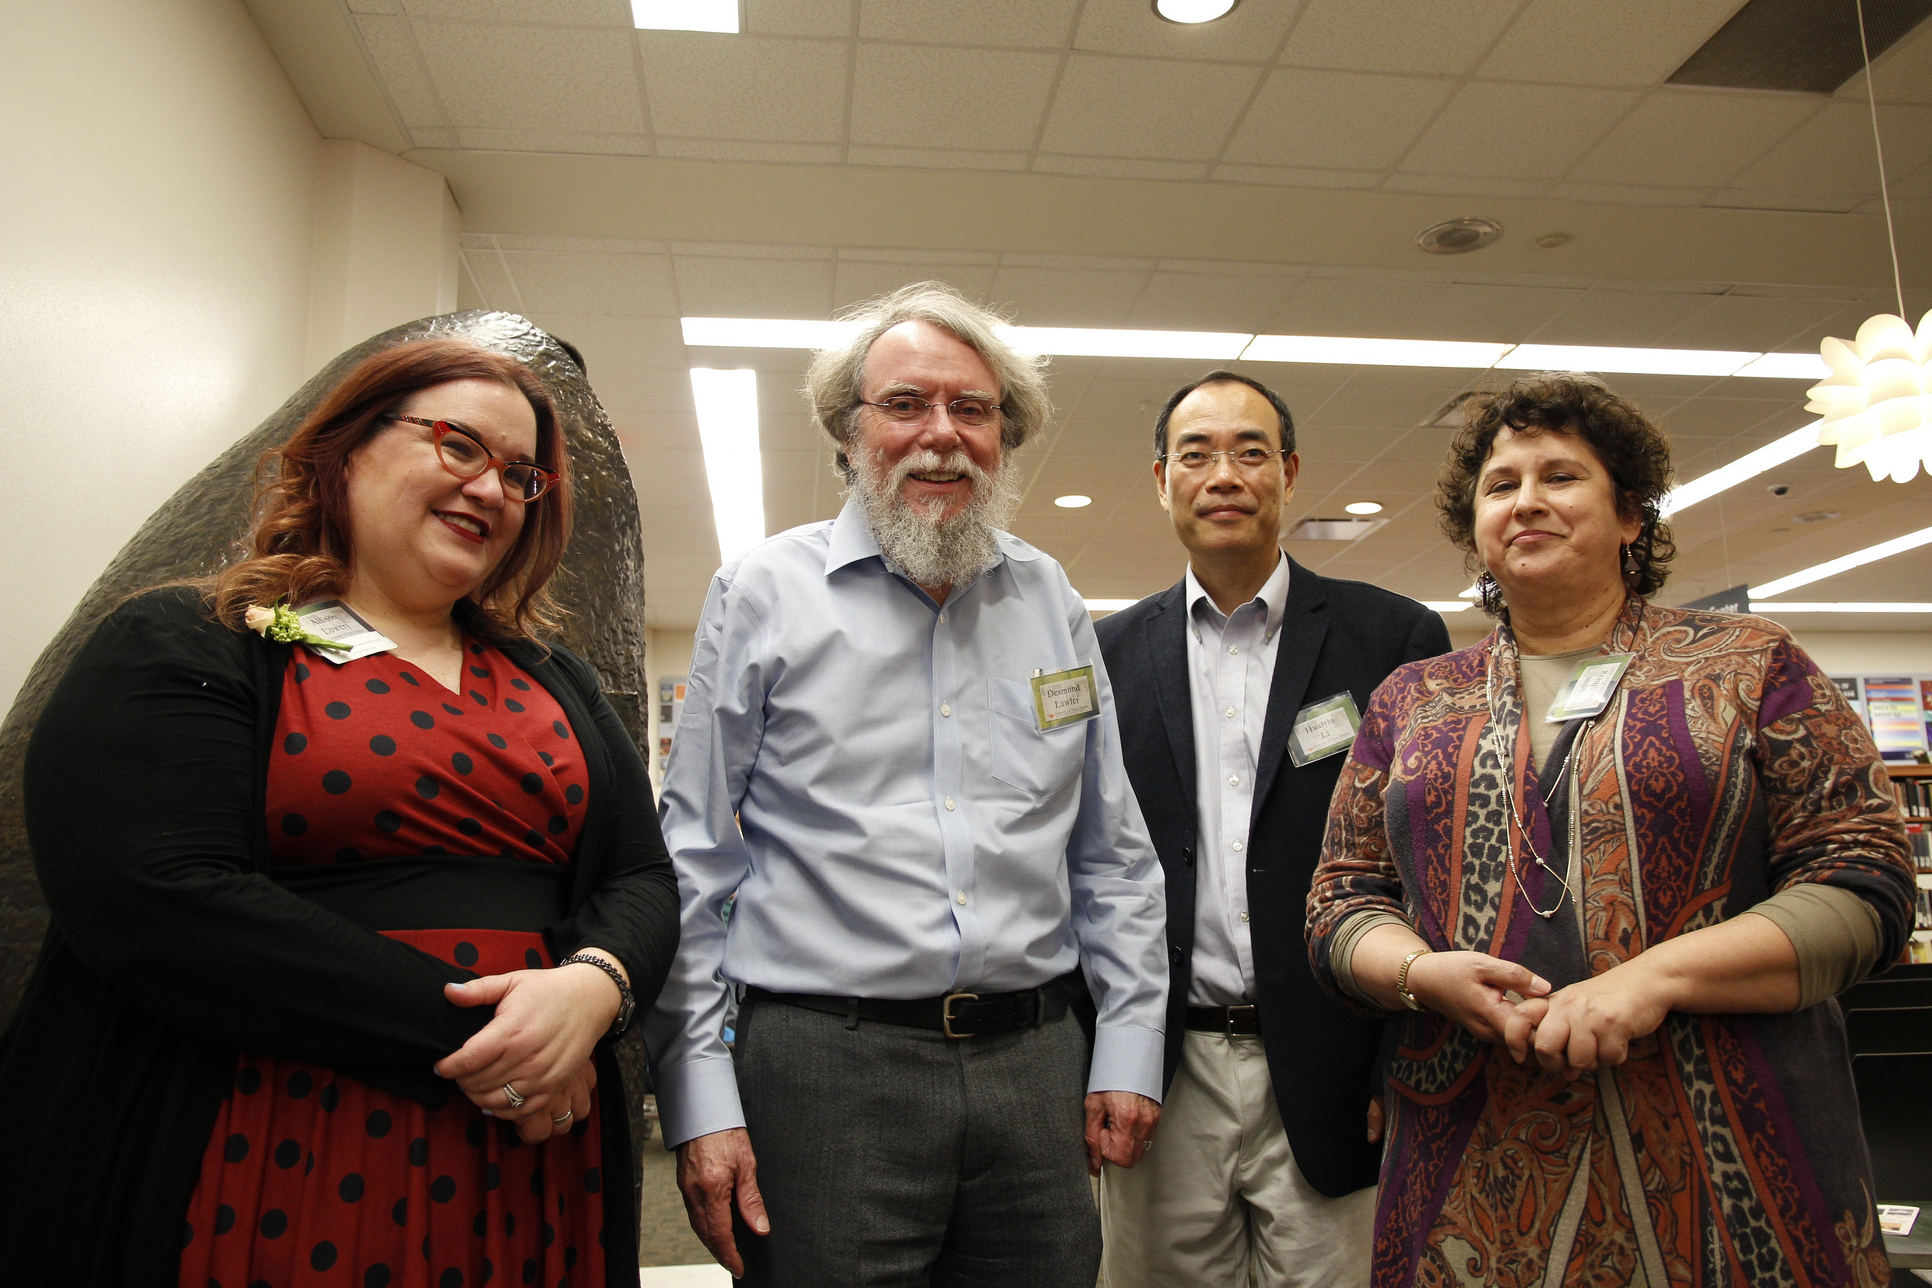 Authors, left to right: Allison Lowery, Dr. Desmond Lawler, Dr. Huaiyin Li, and grand-prize winner Dr. Denise Spellberg.